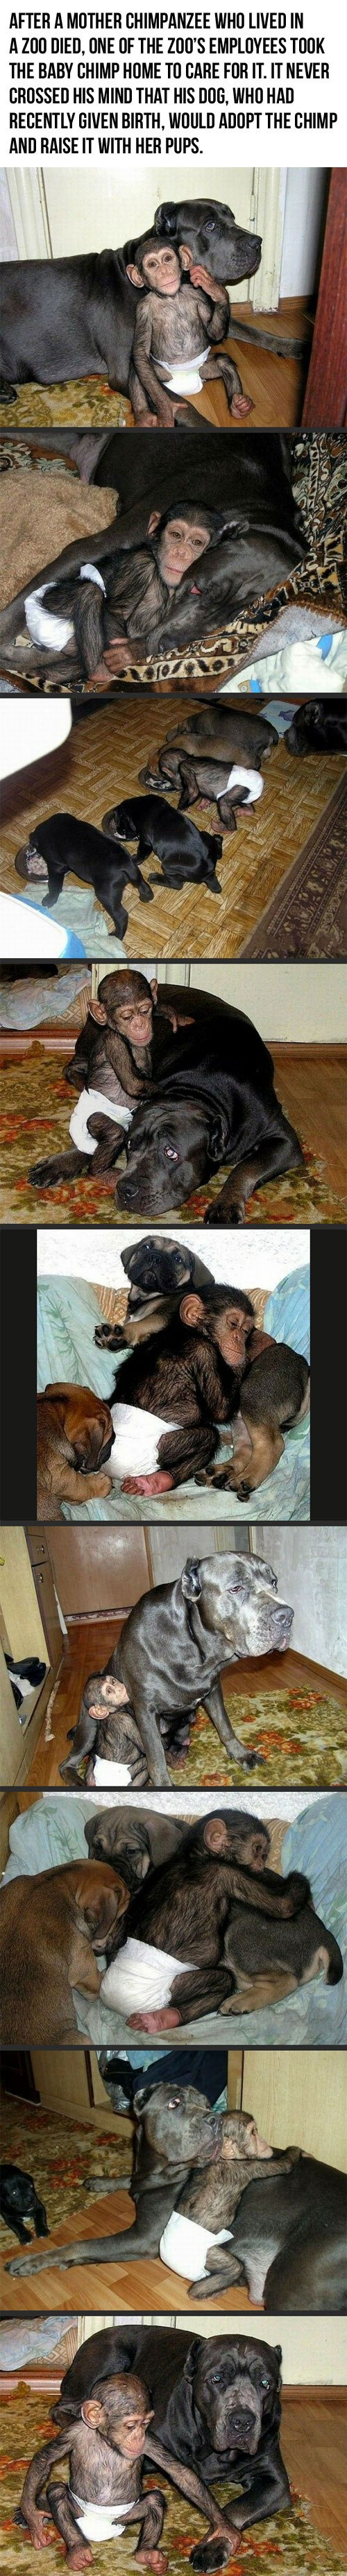 orphaned baby chimpanzee adopted and raised by a dog mother